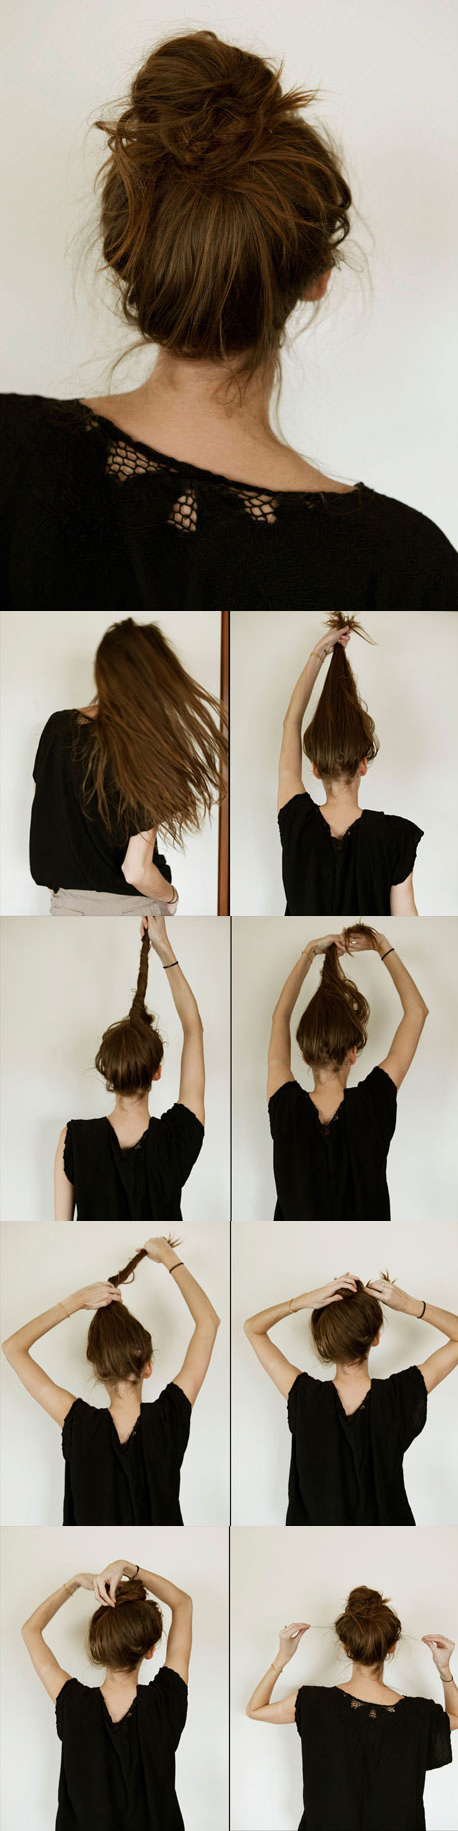 Peachy 13 Rather Simple Bun Hairstyles Tutorials For 2014 Pretty Designs Hairstyle Inspiration Daily Dogsangcom